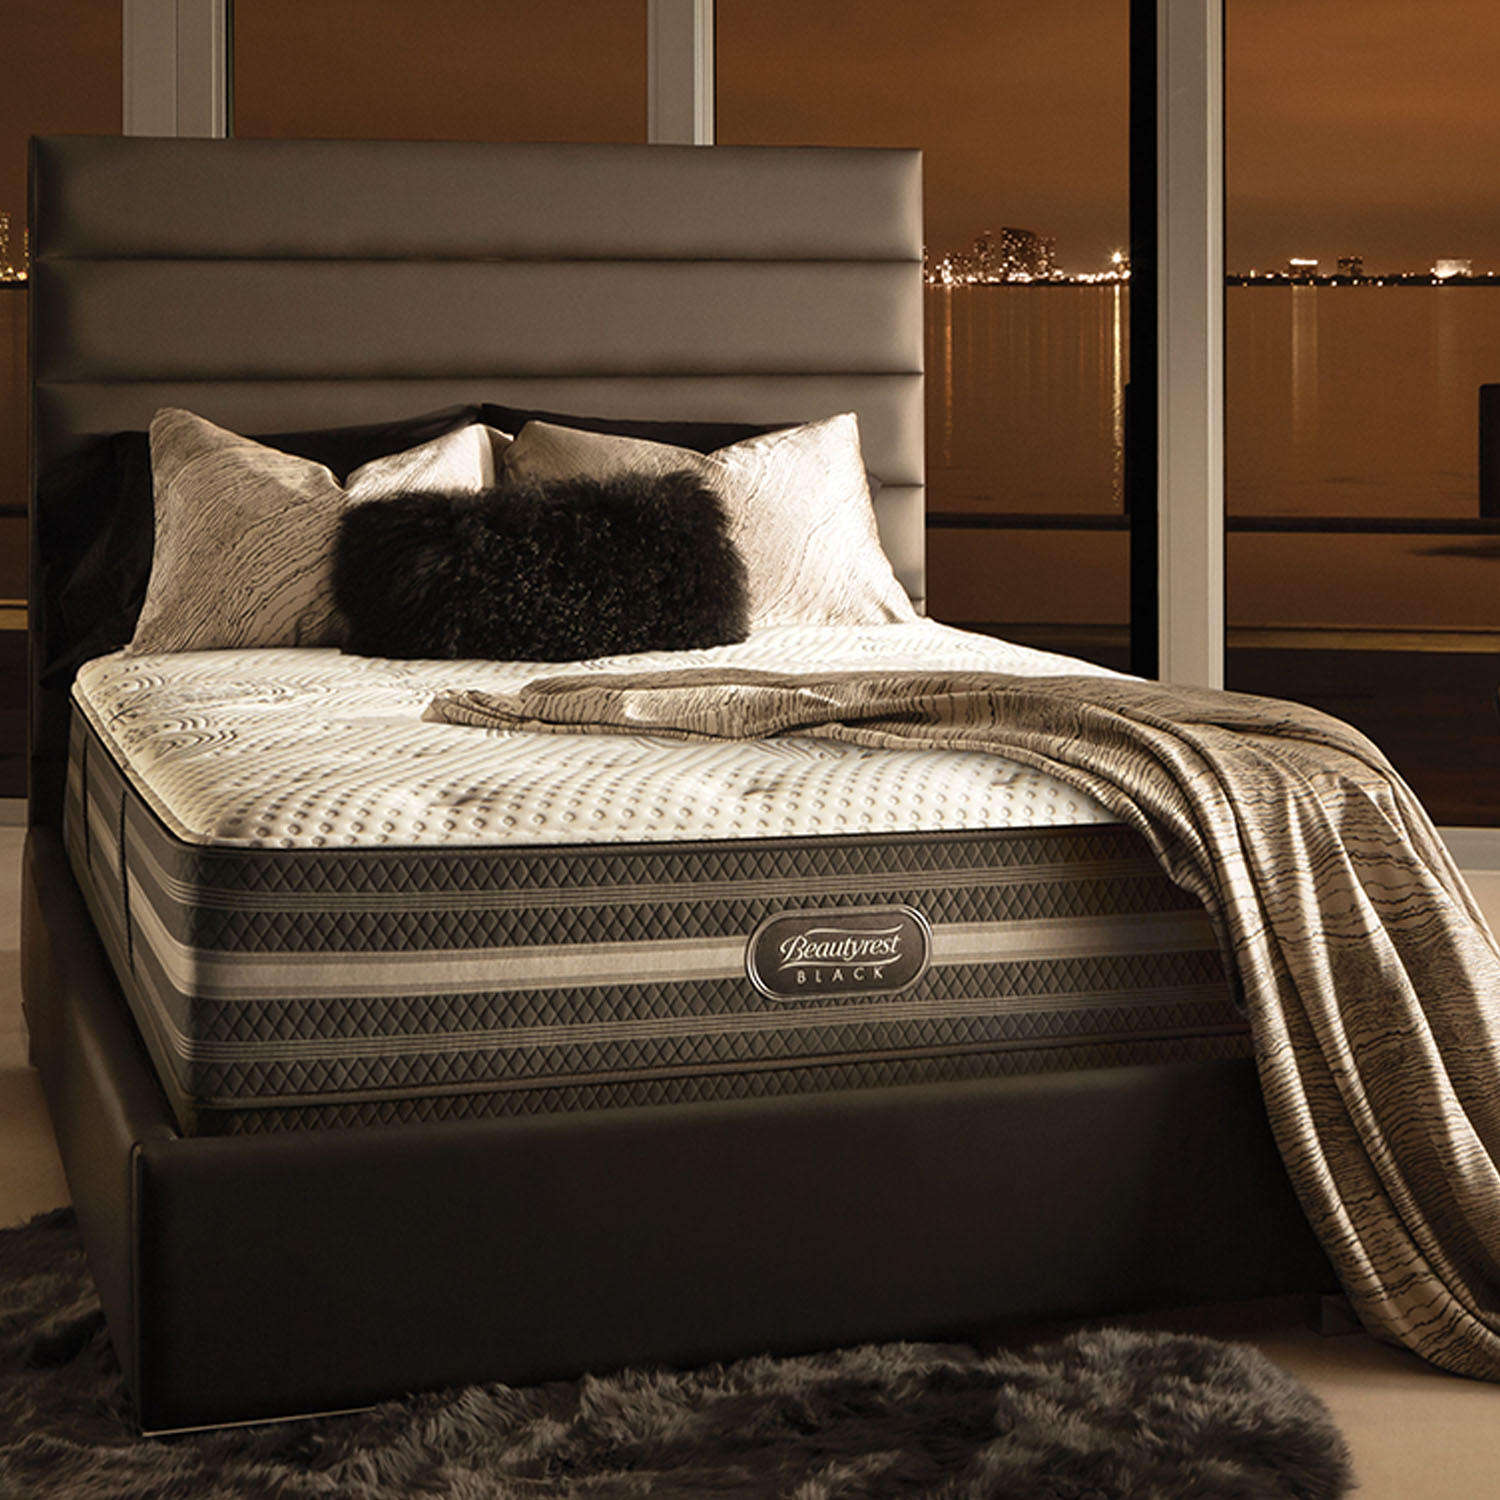 Beautyrest Black Desiree Firm King Mattress